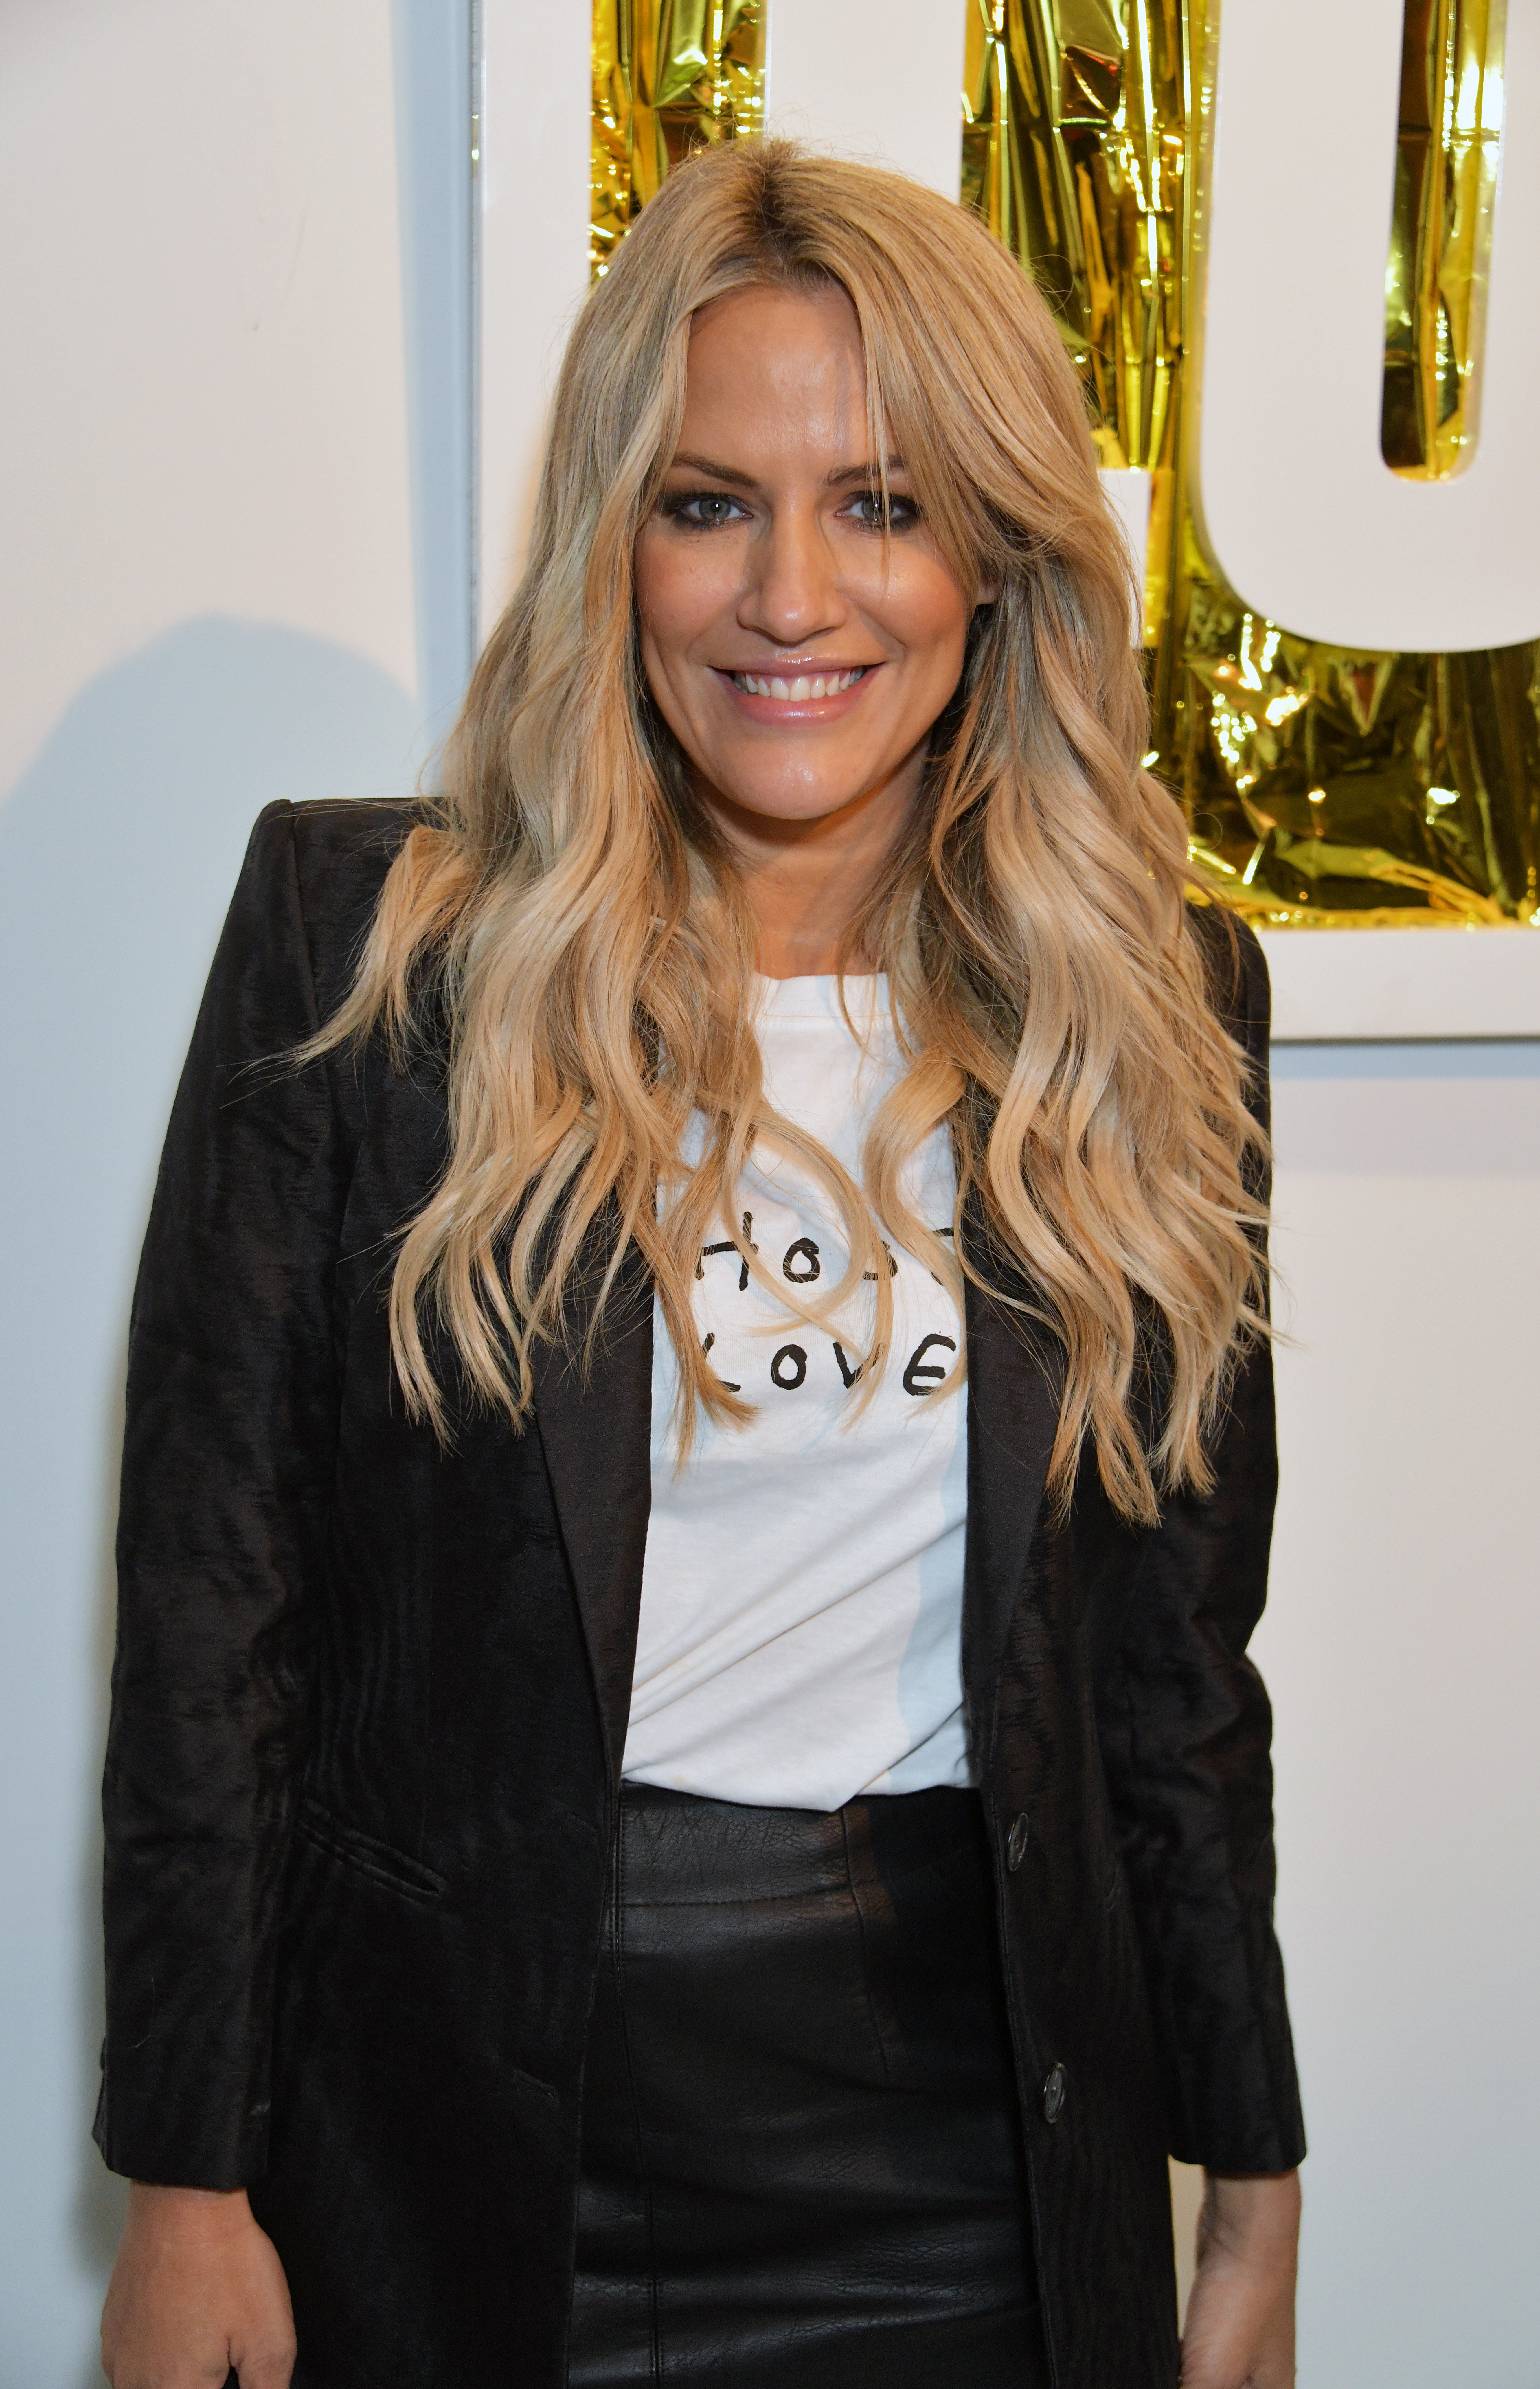 Caroline Flack at the launch of the Choose Love LFW Collection hosted by Help Refugees during London Fashion Week September 2019 in London, England | Photo: David M. Benett/Dave Benett/Getty Images